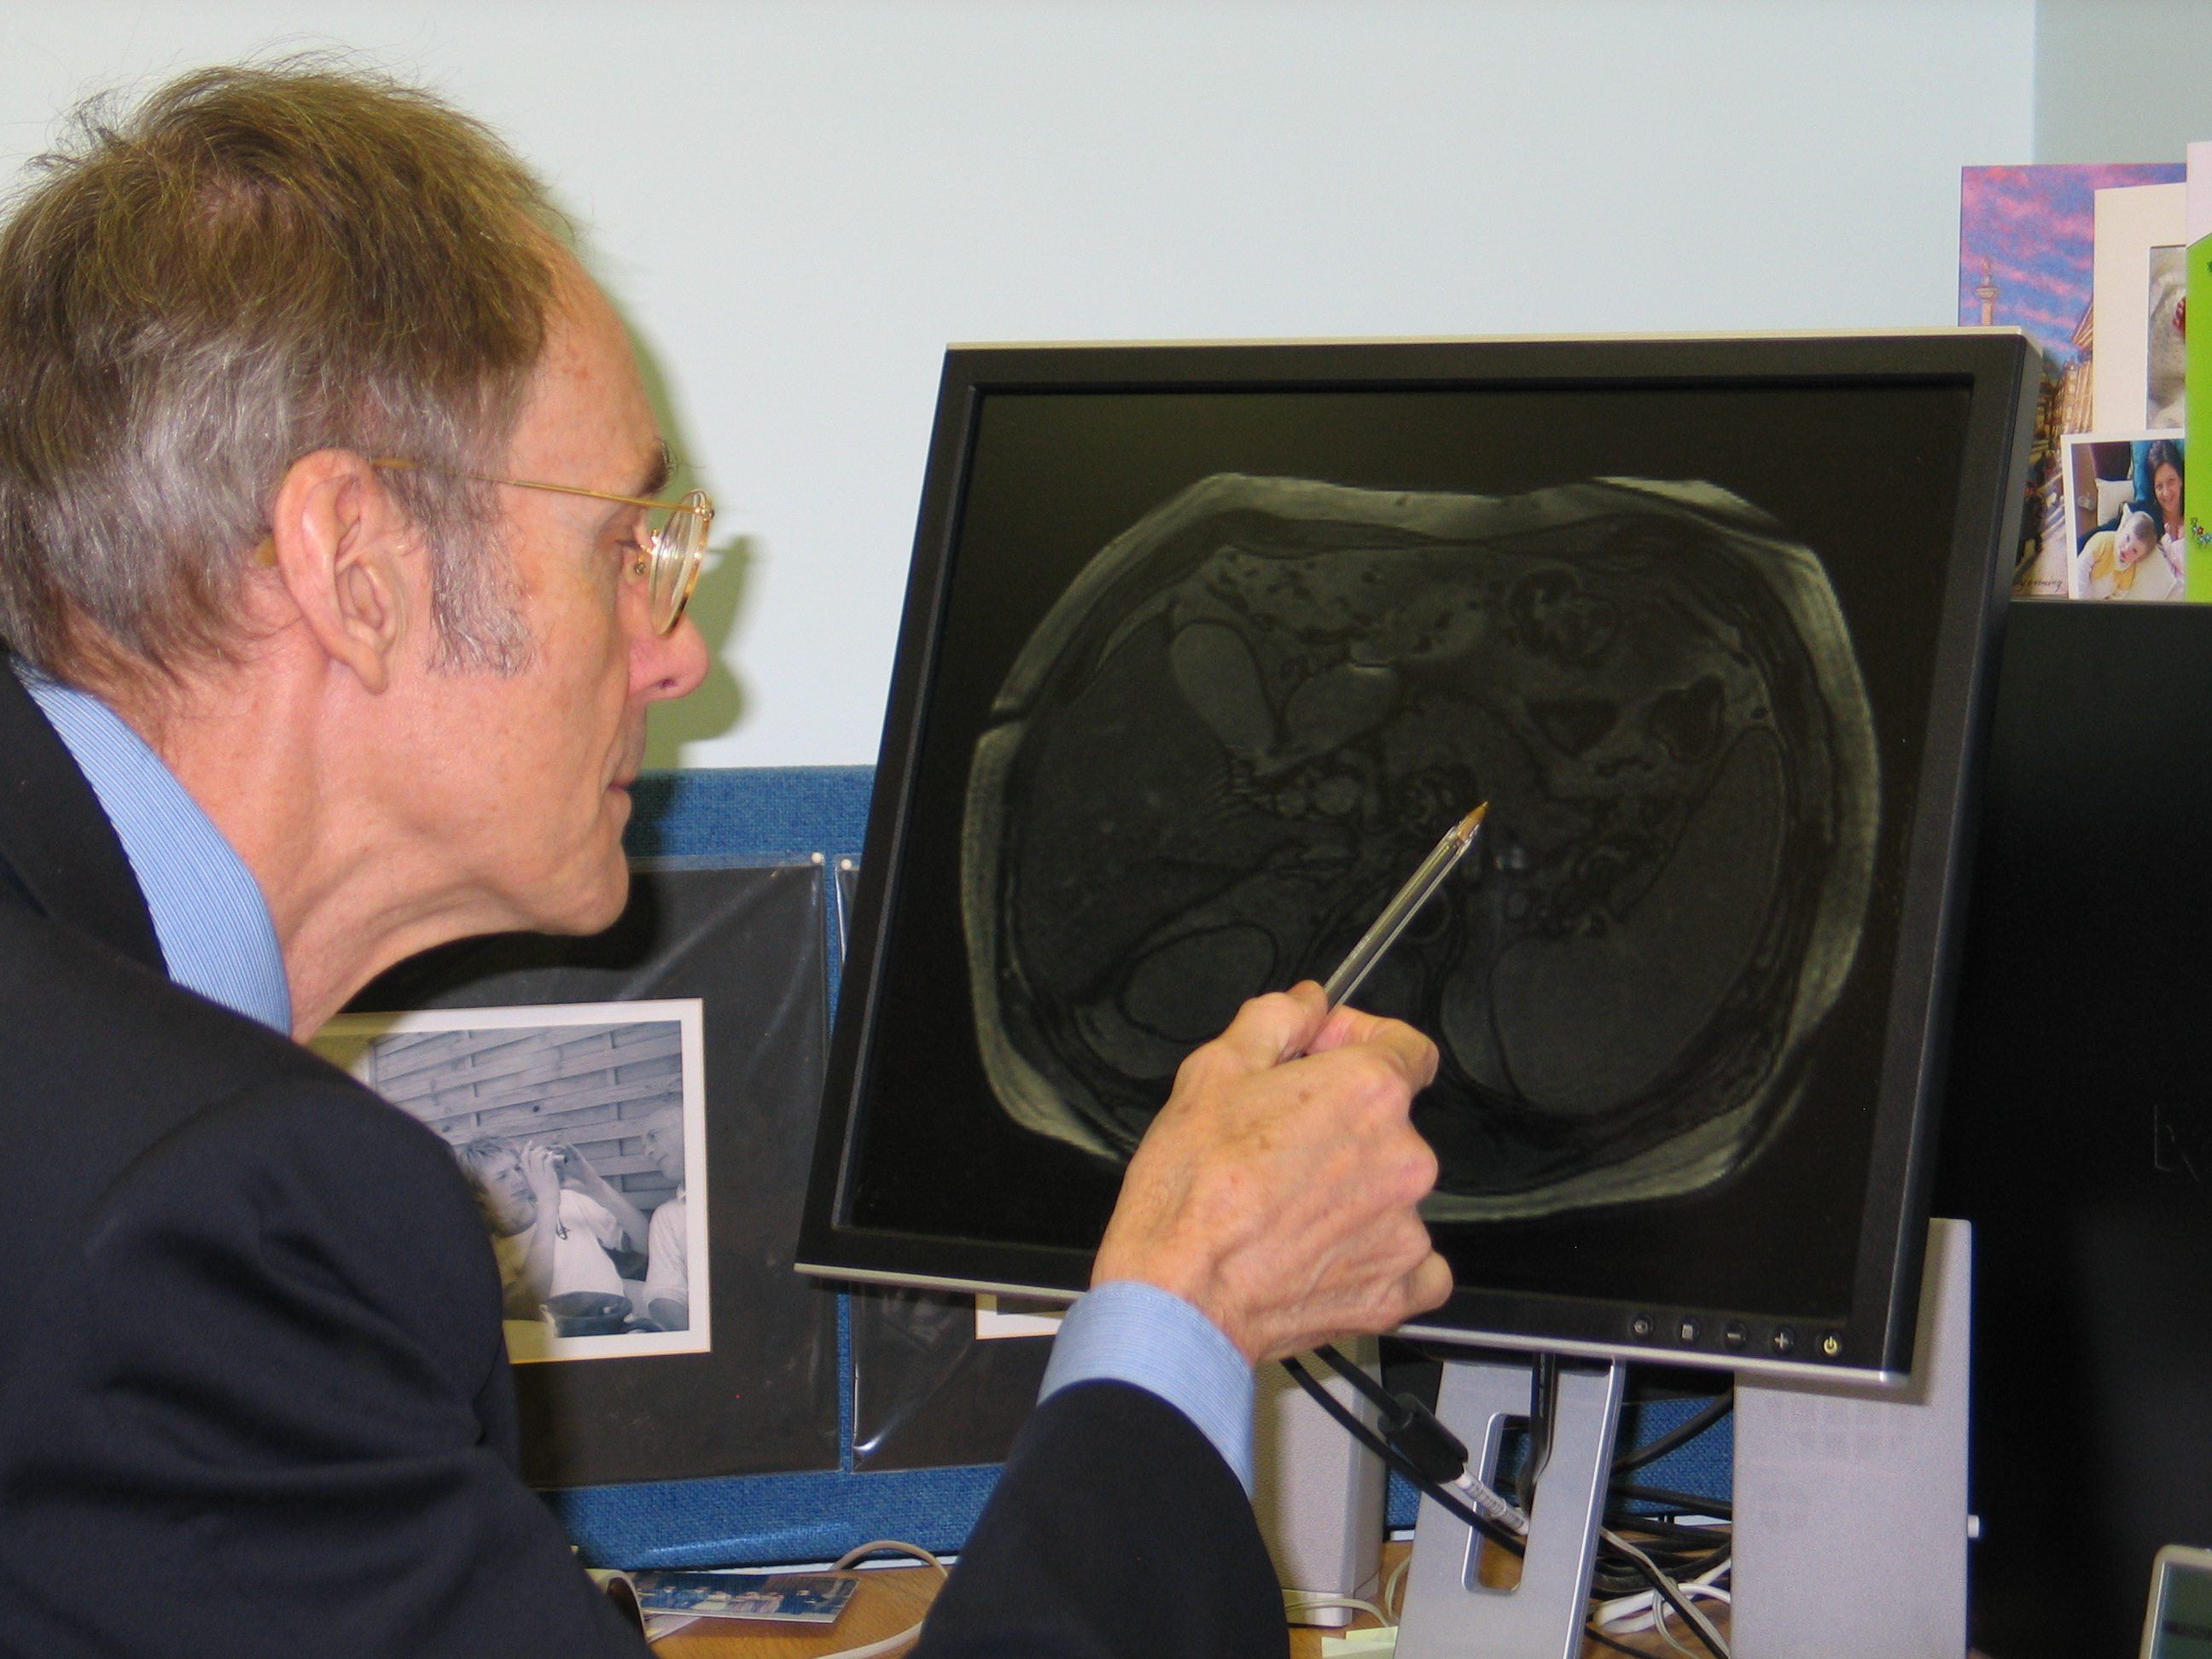 Prof Roy Taylor looking at an MRI scan on a computer screen